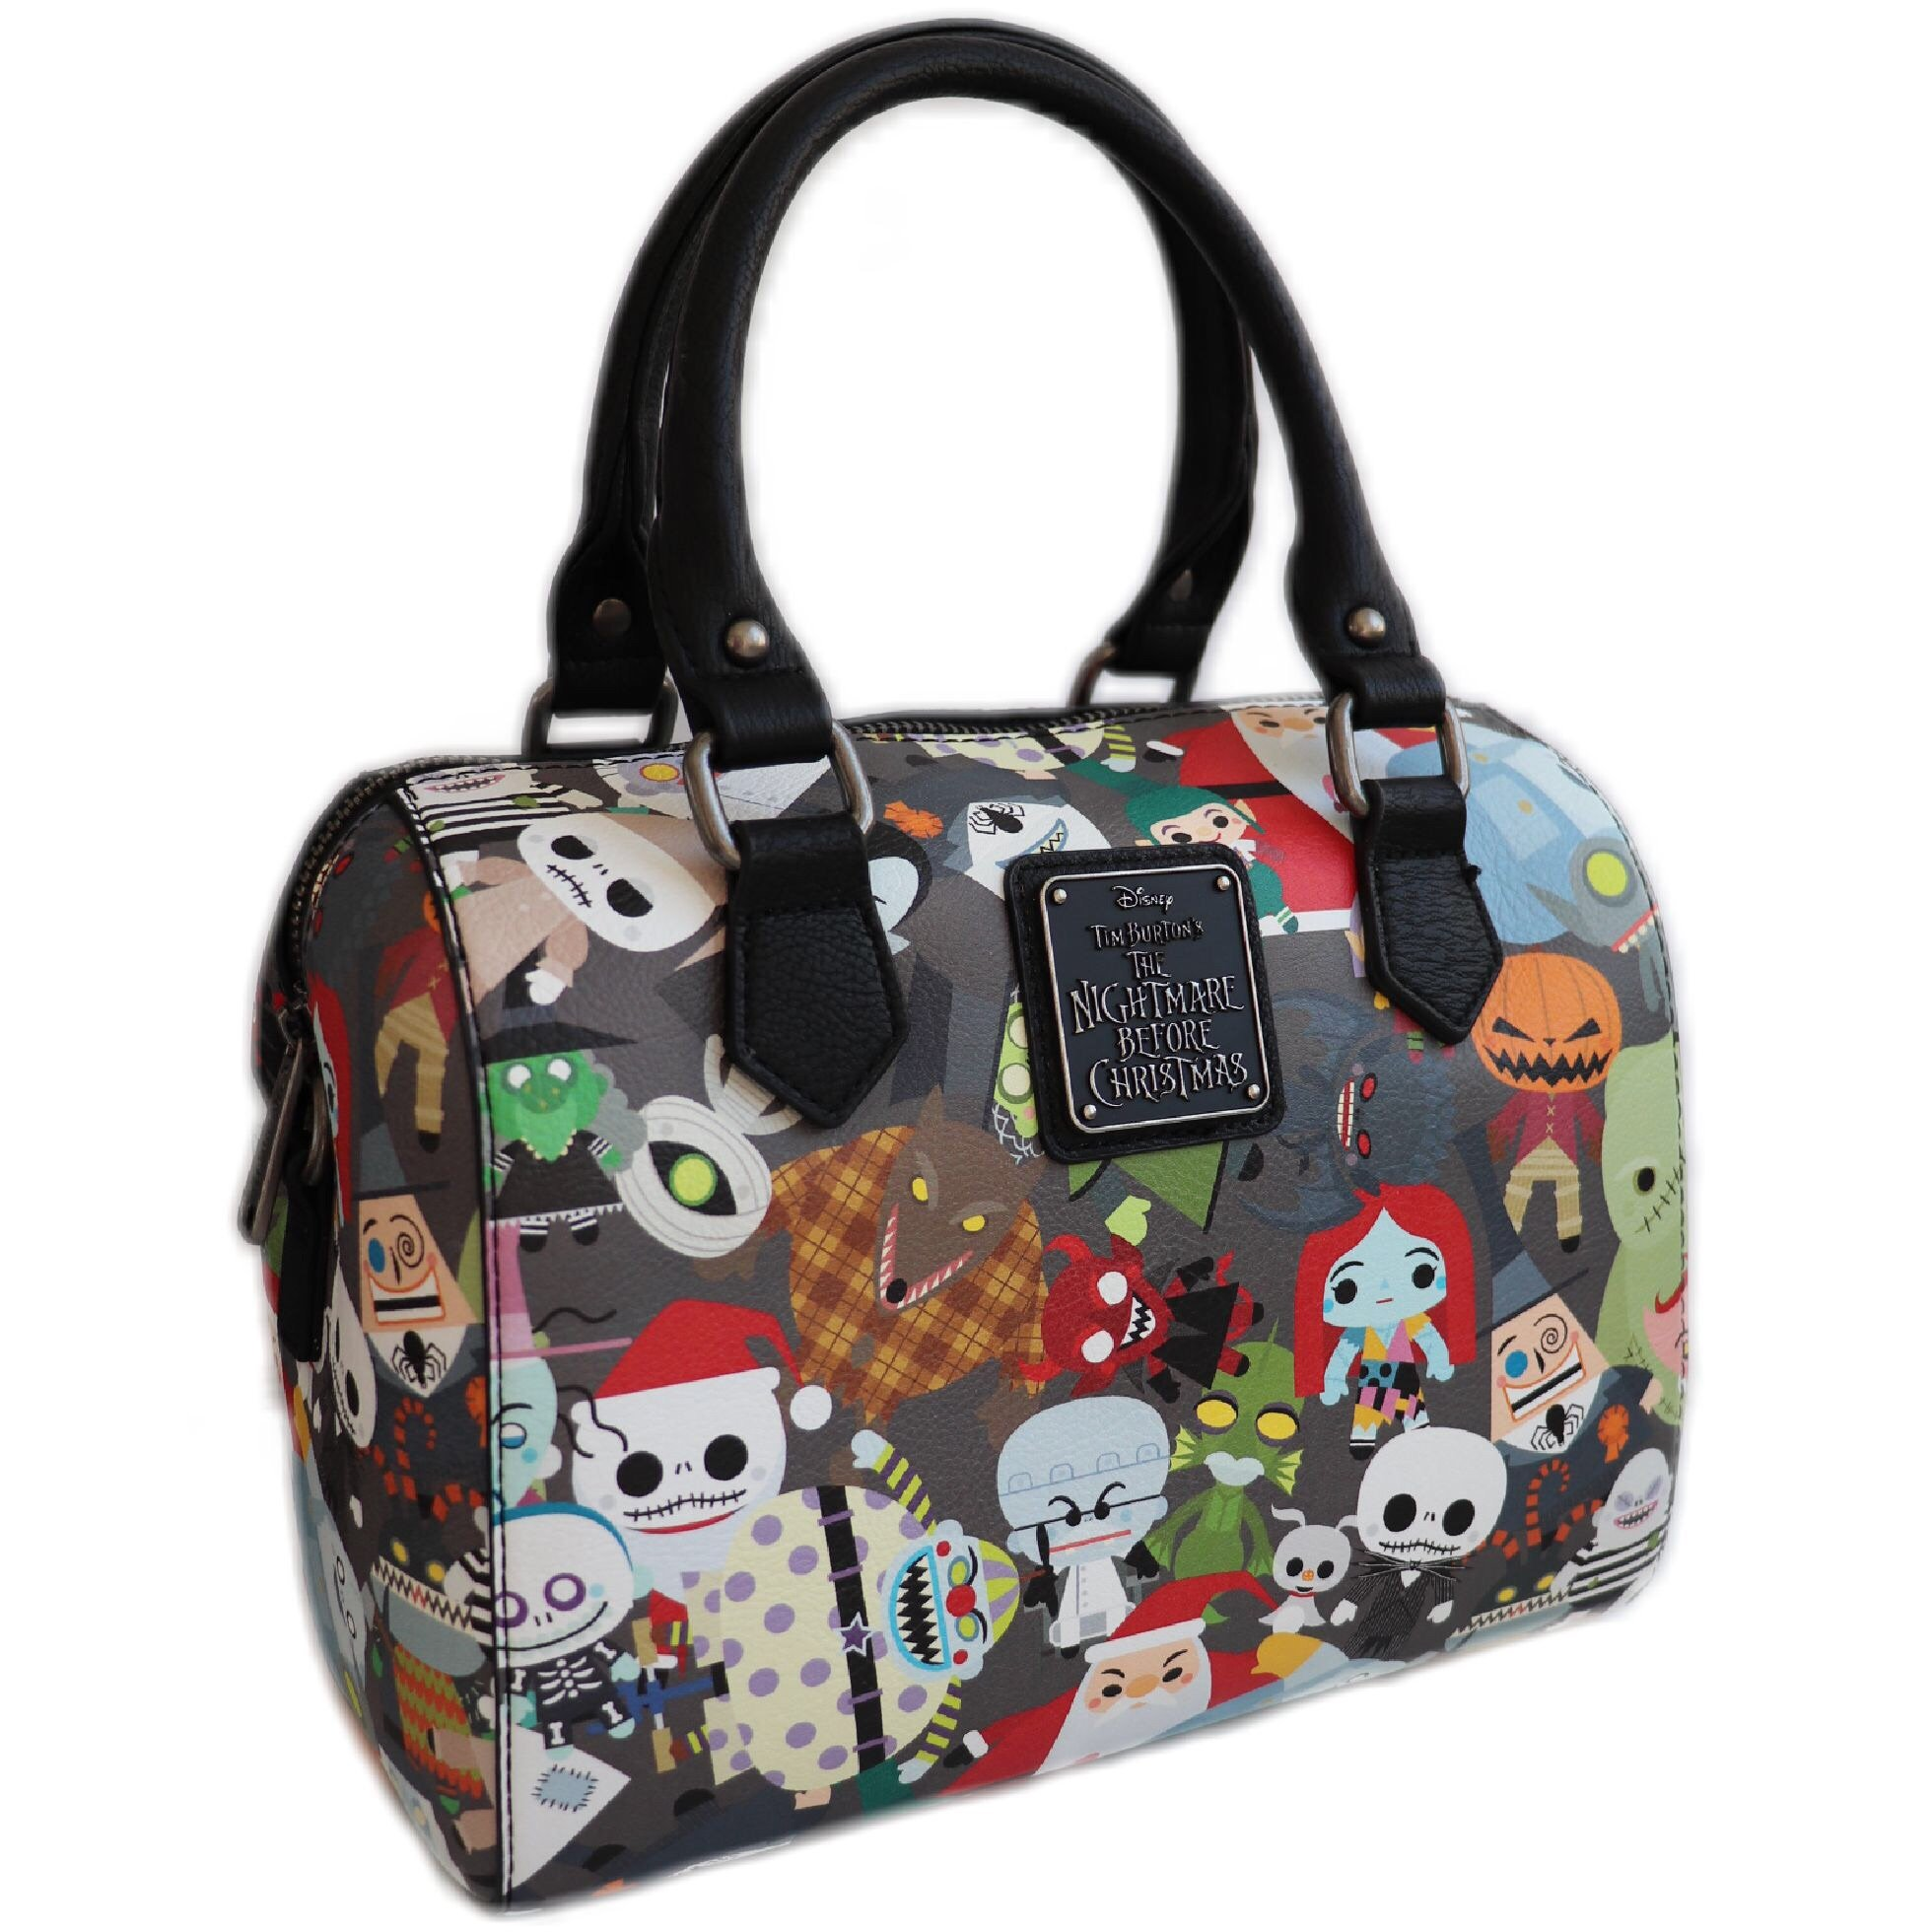 d8888ea6733 25th Anniversary The Nightmare Before Christmas Duffle Bag - By ...